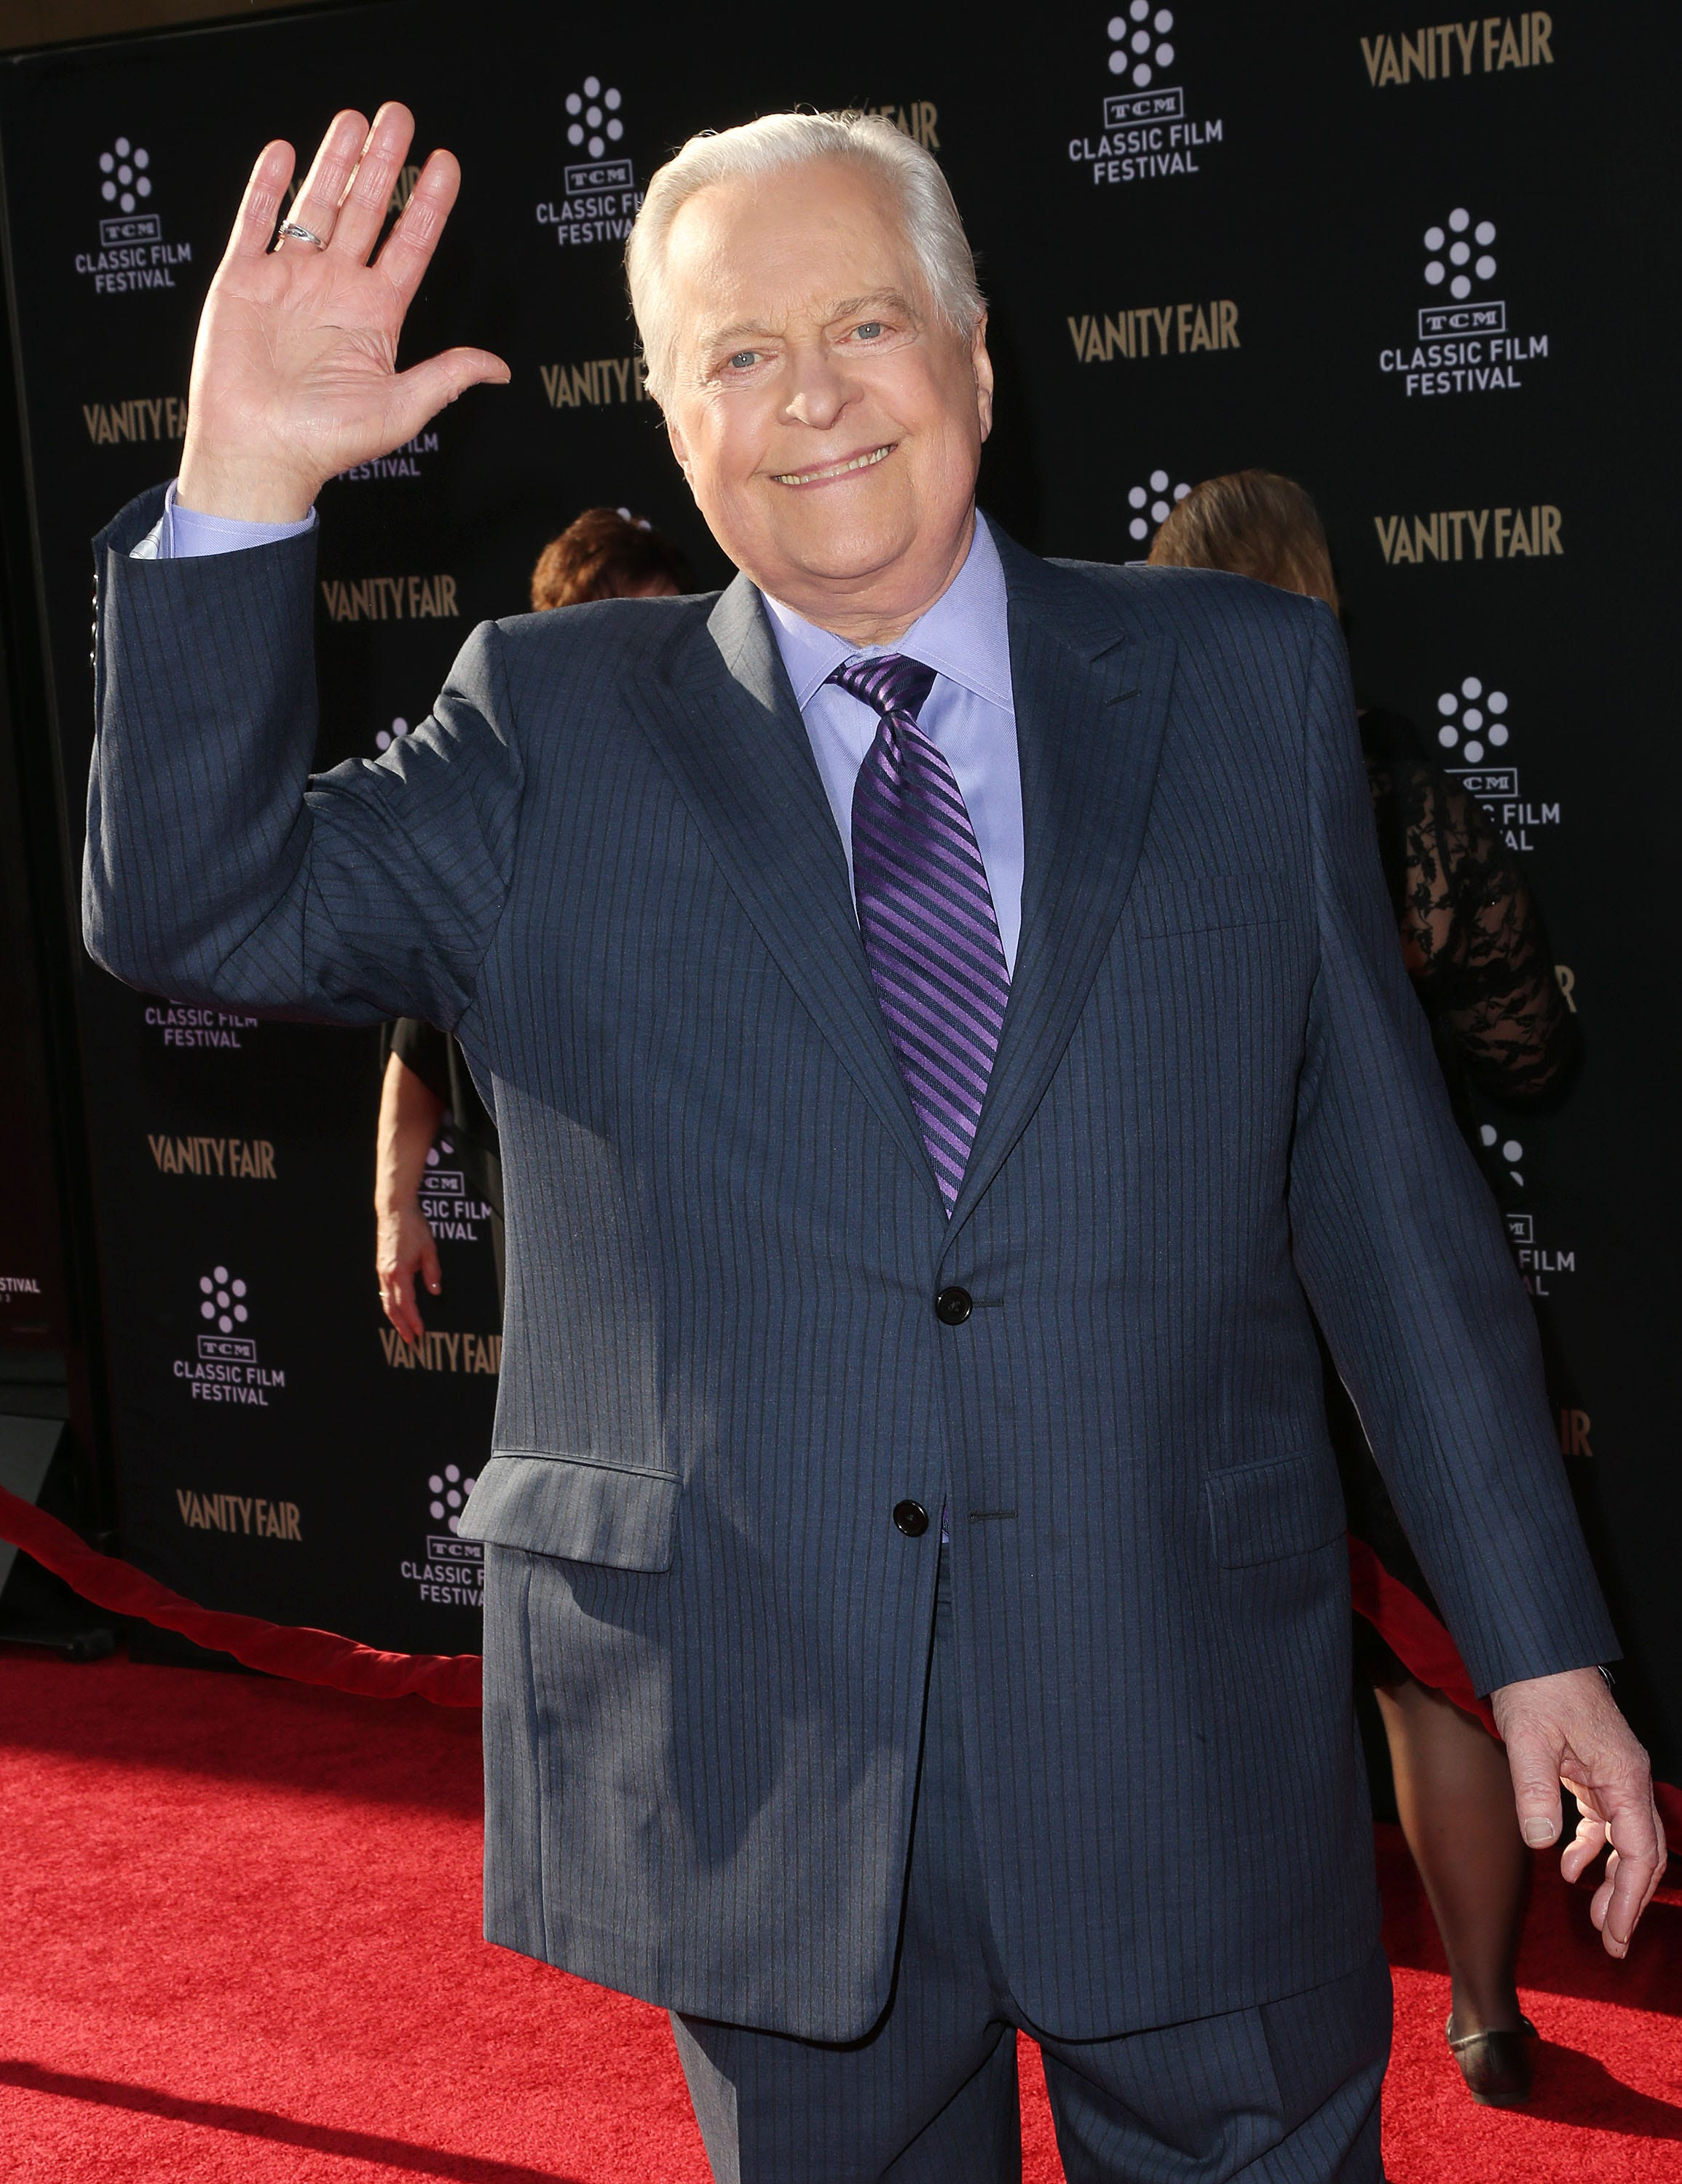 robert osborne deathrobert osborne introduction, robert osborne death, robert osborne wiki, robert osborne imdb, robert osborne illness, robert osborne wife sarah osborne, robert osborne cues, robert osborne wife, robert osborne personal life, robert osborne gay, robert osborne health, robert osborne net worth, robert osborne tcm married, robert osborne favorite movies, robert osborne stroke, robert osborne young, robert osborne wife picture, robert osborne md, robert osborne 2016, robert osborne beverly hillbillies